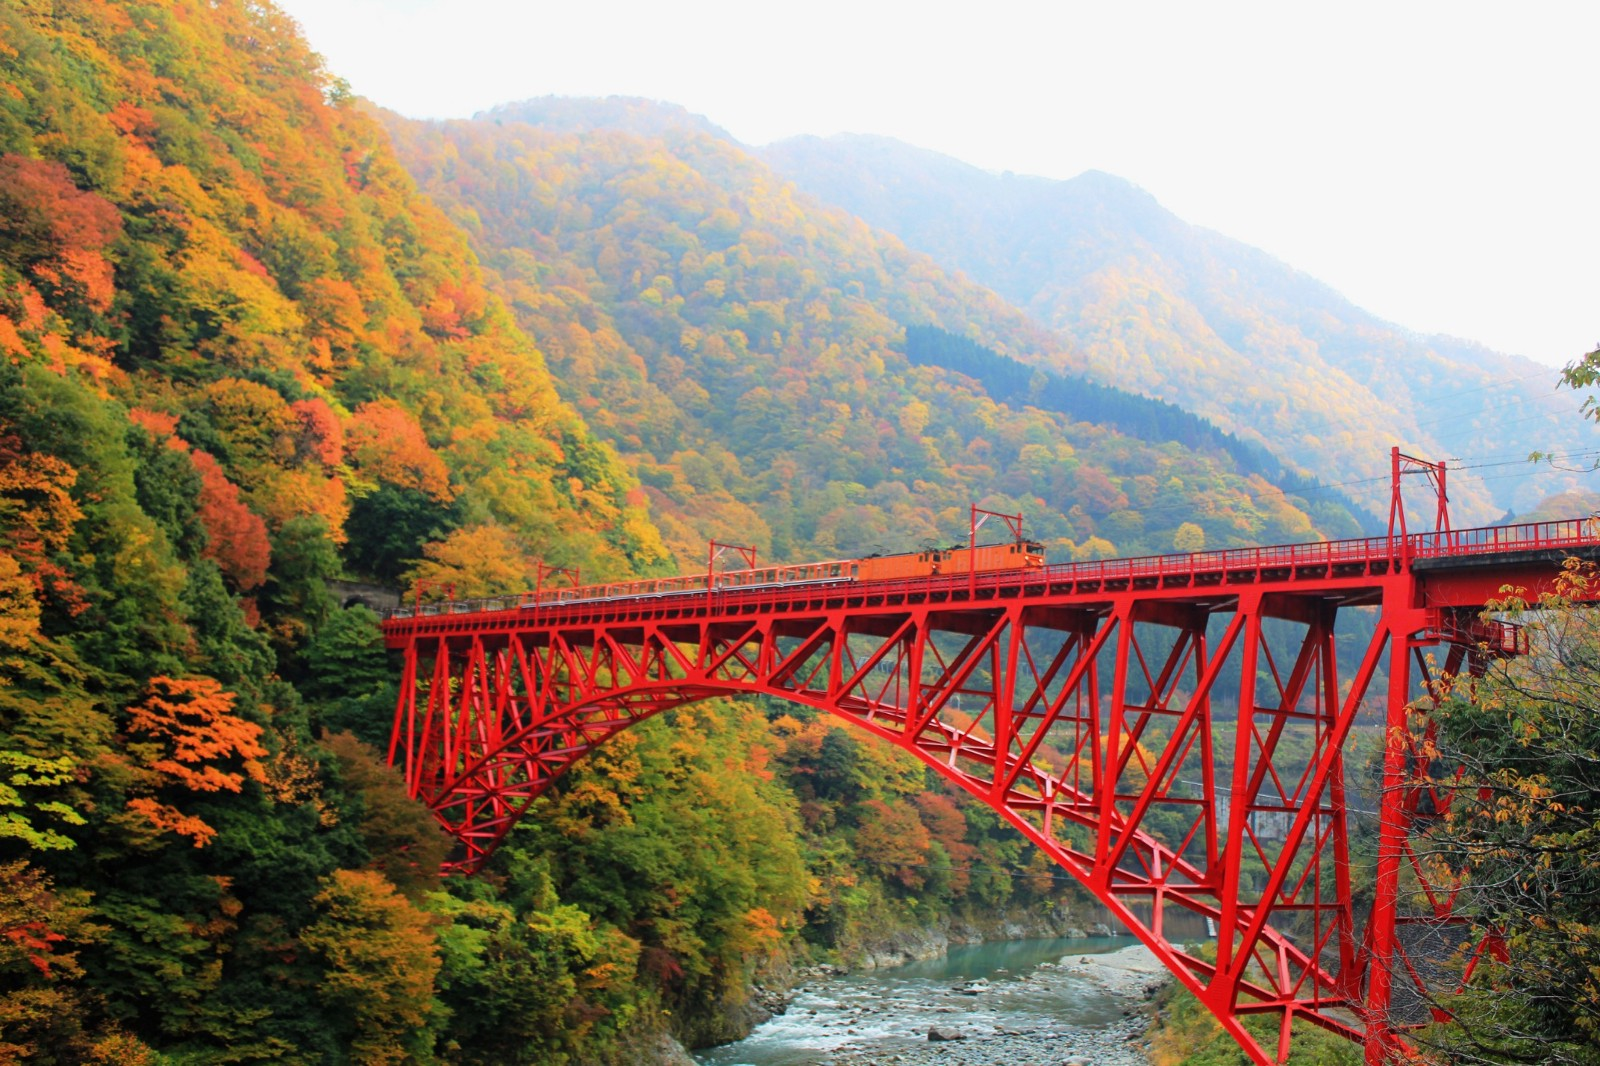 Best Autumn Leaves Spots in Japan